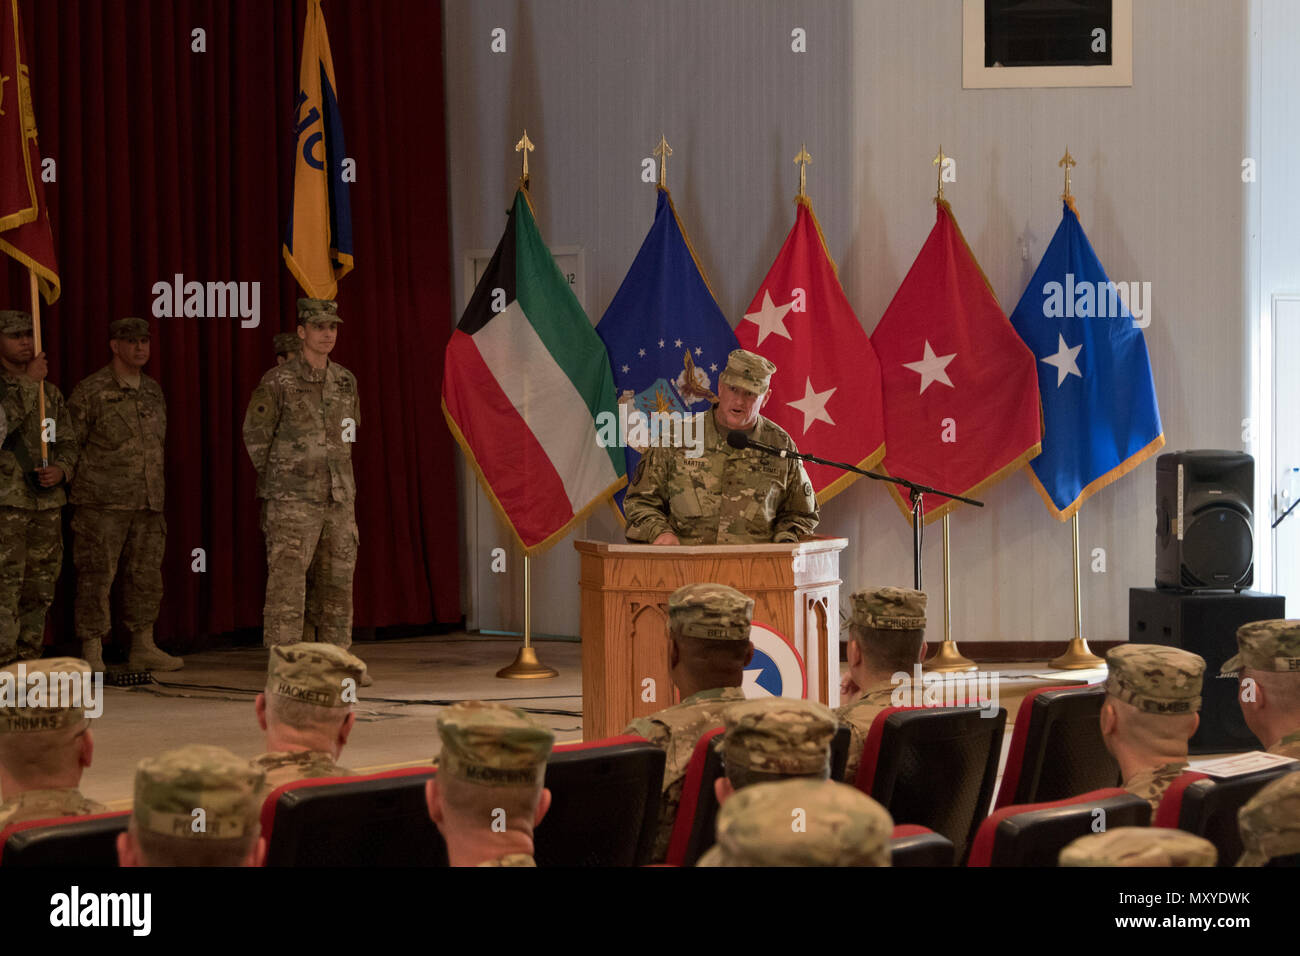 Brig. Gen. Robert Harter, the commanding general of the 316th Sustainment Command (Expeditionary), gives remarks during the 451st ESC and 316th ESC transfer of authority ceremony at Camp Arifjan, Kuwait, Dec. 23, 2016. (U.S. Army Photo by Staff Sgt. Dalton Smith) - Stock Image